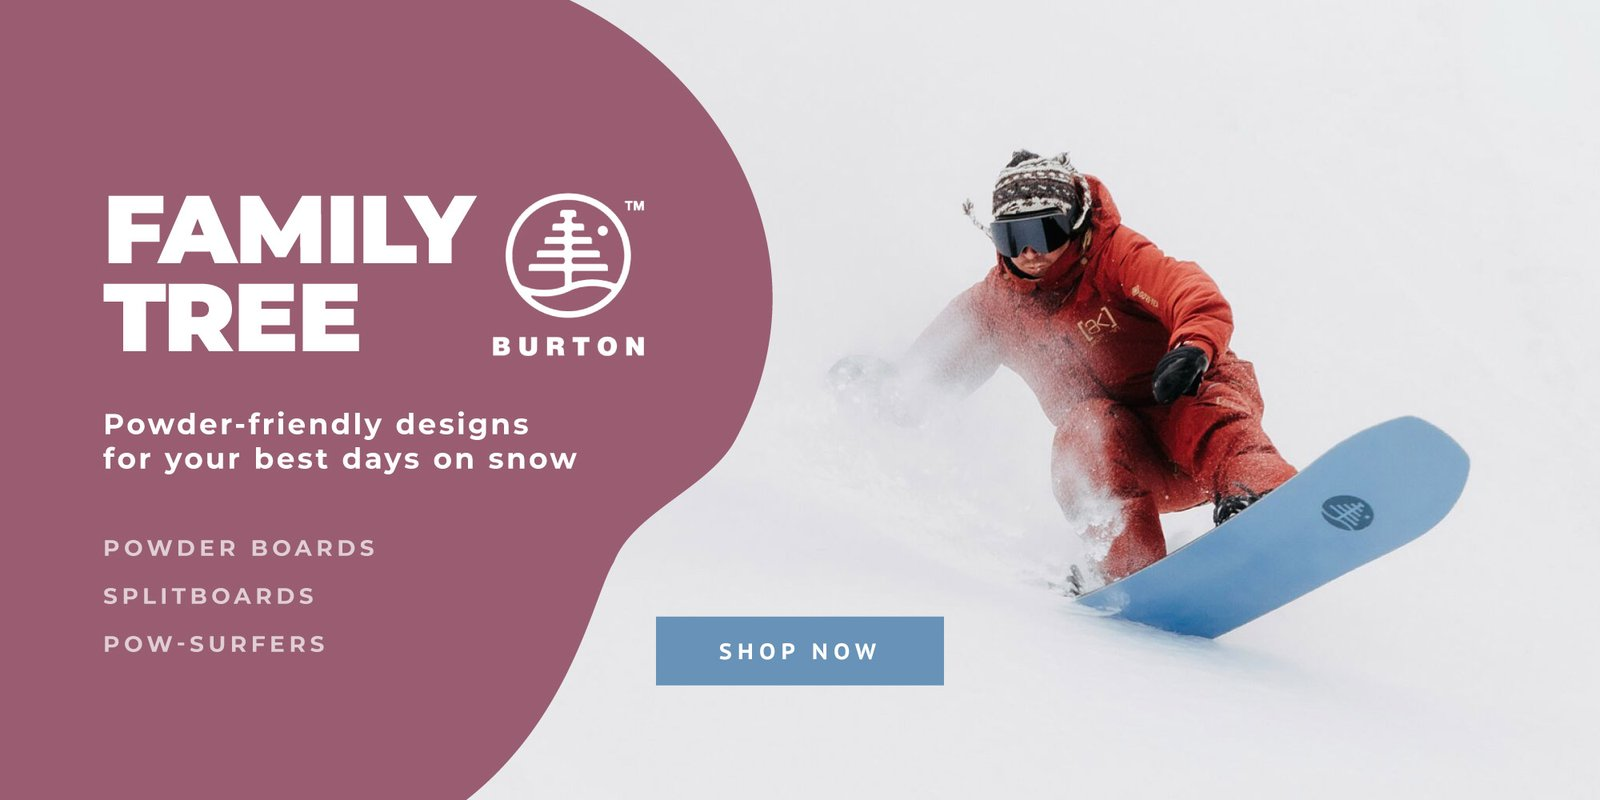 K2 Clicker x HB is Here